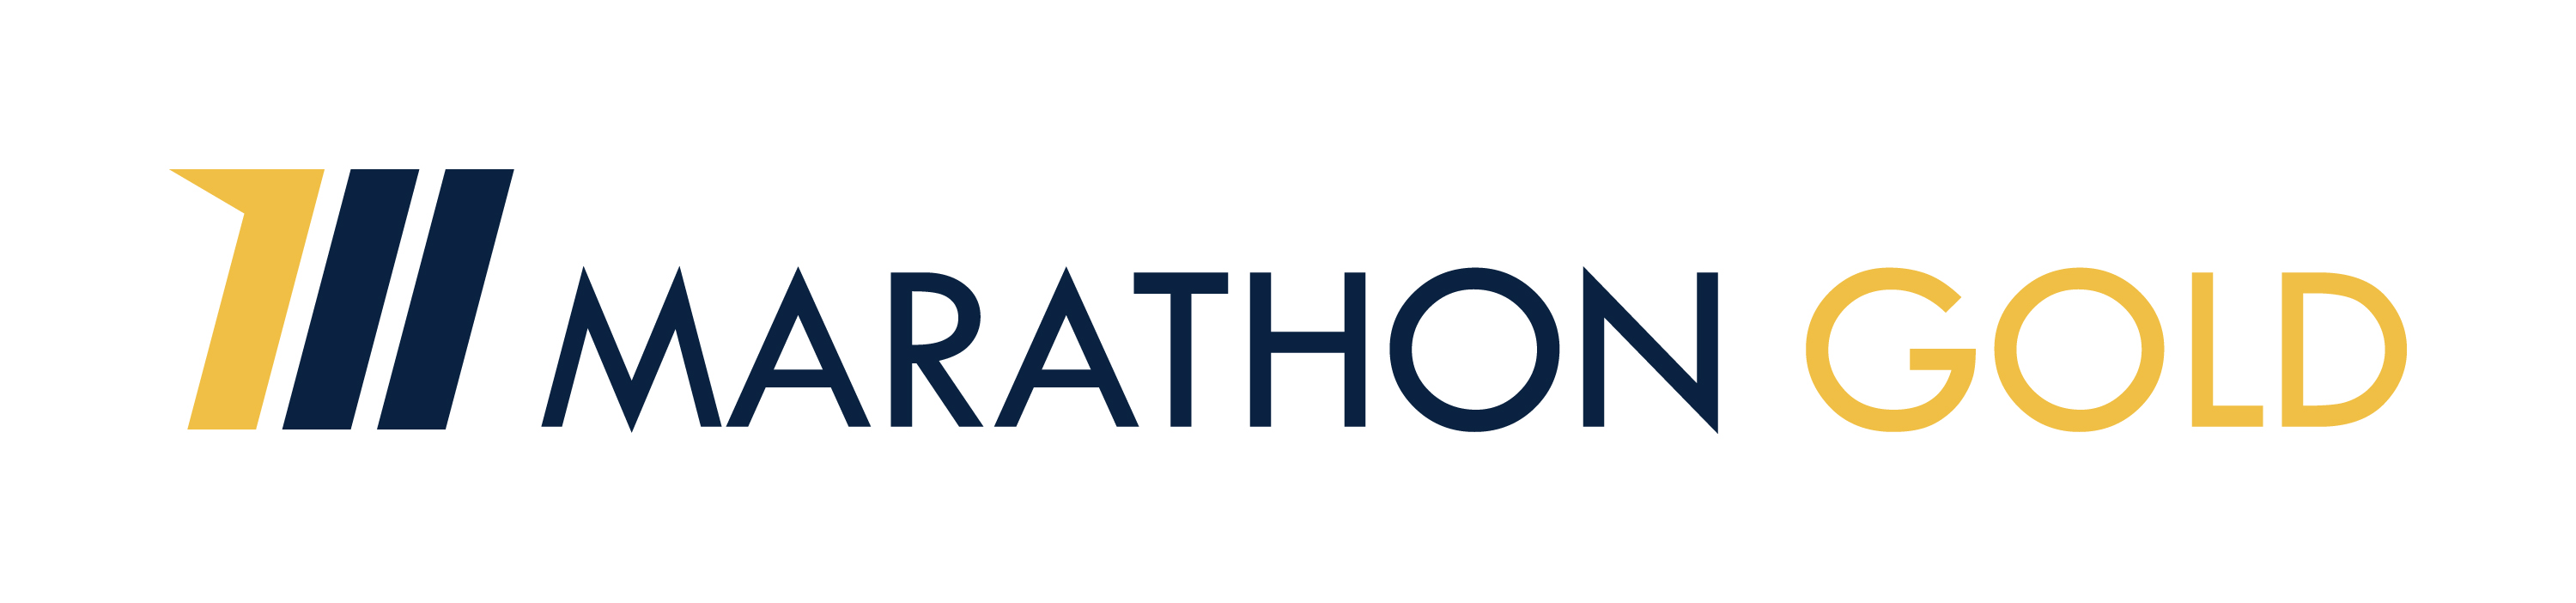 Marathon Gold Provides Notice of Management Departure, Return-to-Work Planning and AGM Scheduling